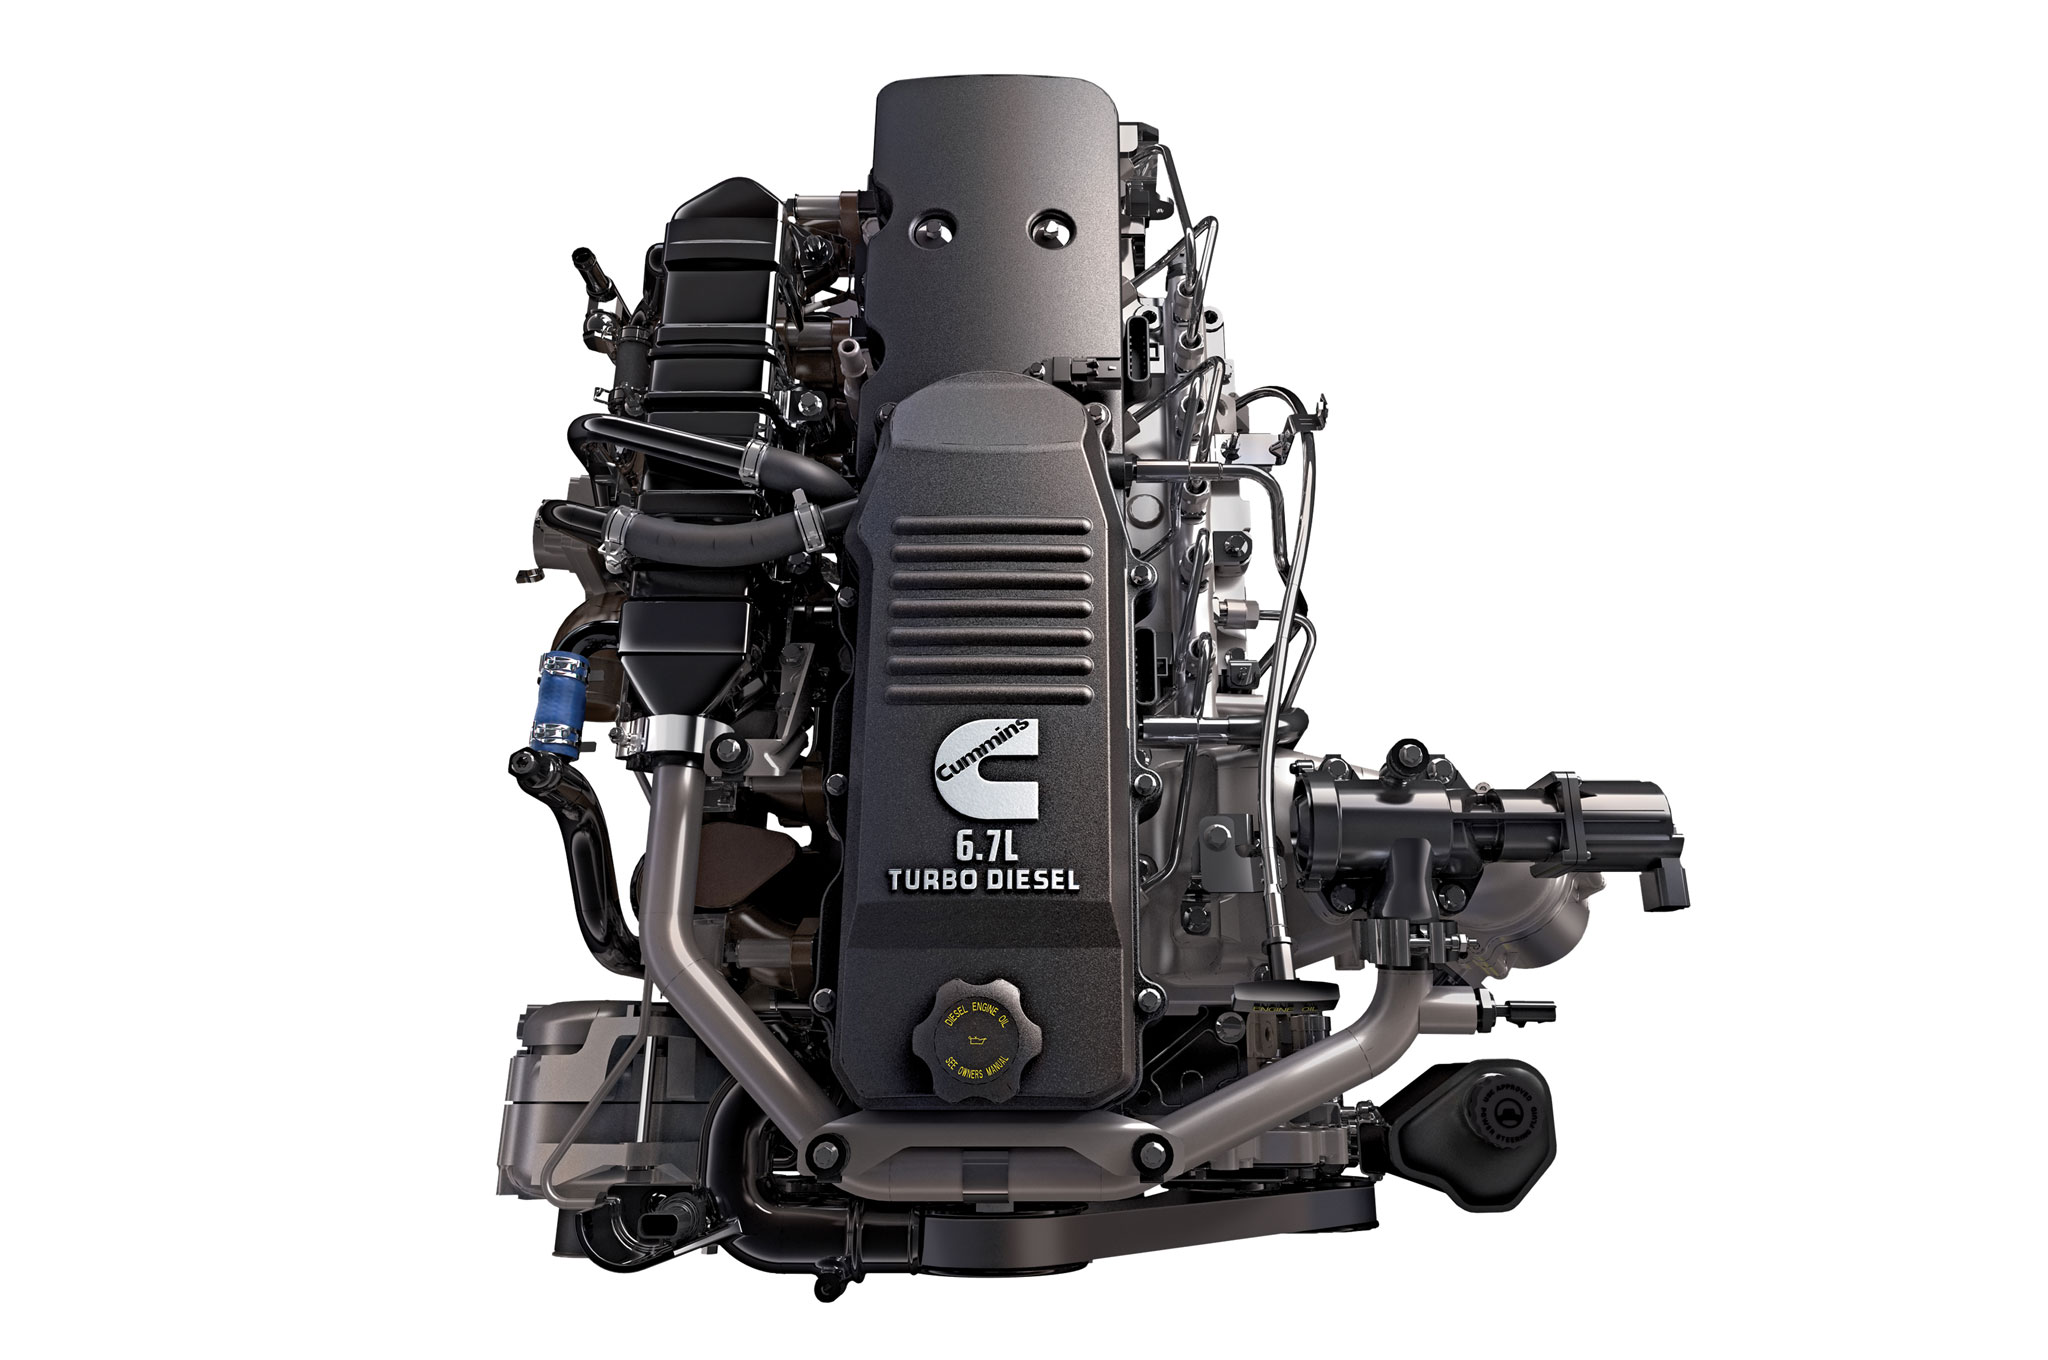 Best Diesel Engine Truck >> Best Diesel Engines For Pickup Trucks The Power Of Nine